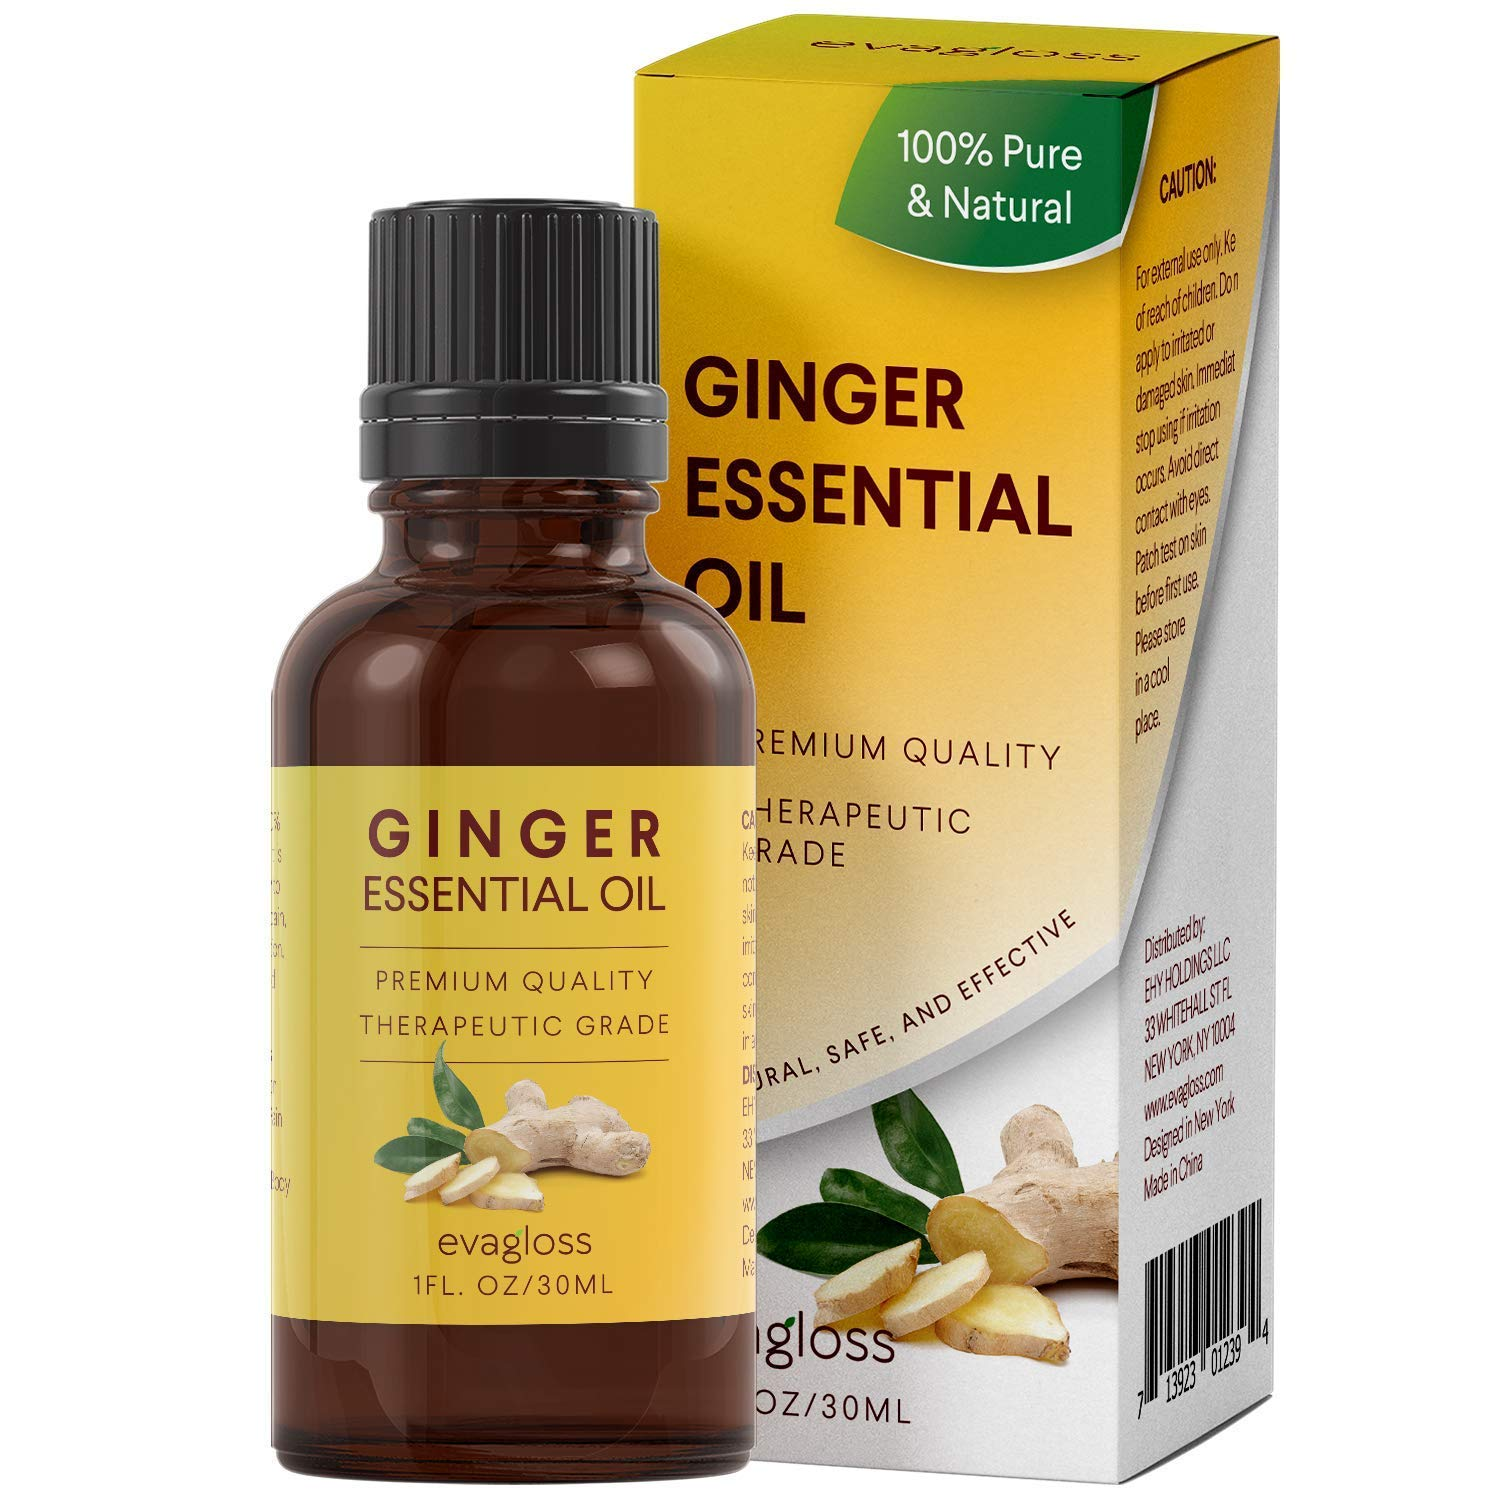 Evagloss Ginger Essential Oil (100% Pure and Natural - Undiluted) Steam Distilled, Natural & Safe Lymphatic Drainage, Reduces Inflammation & Nausea, Premium Quality Essential Oil [30ml]